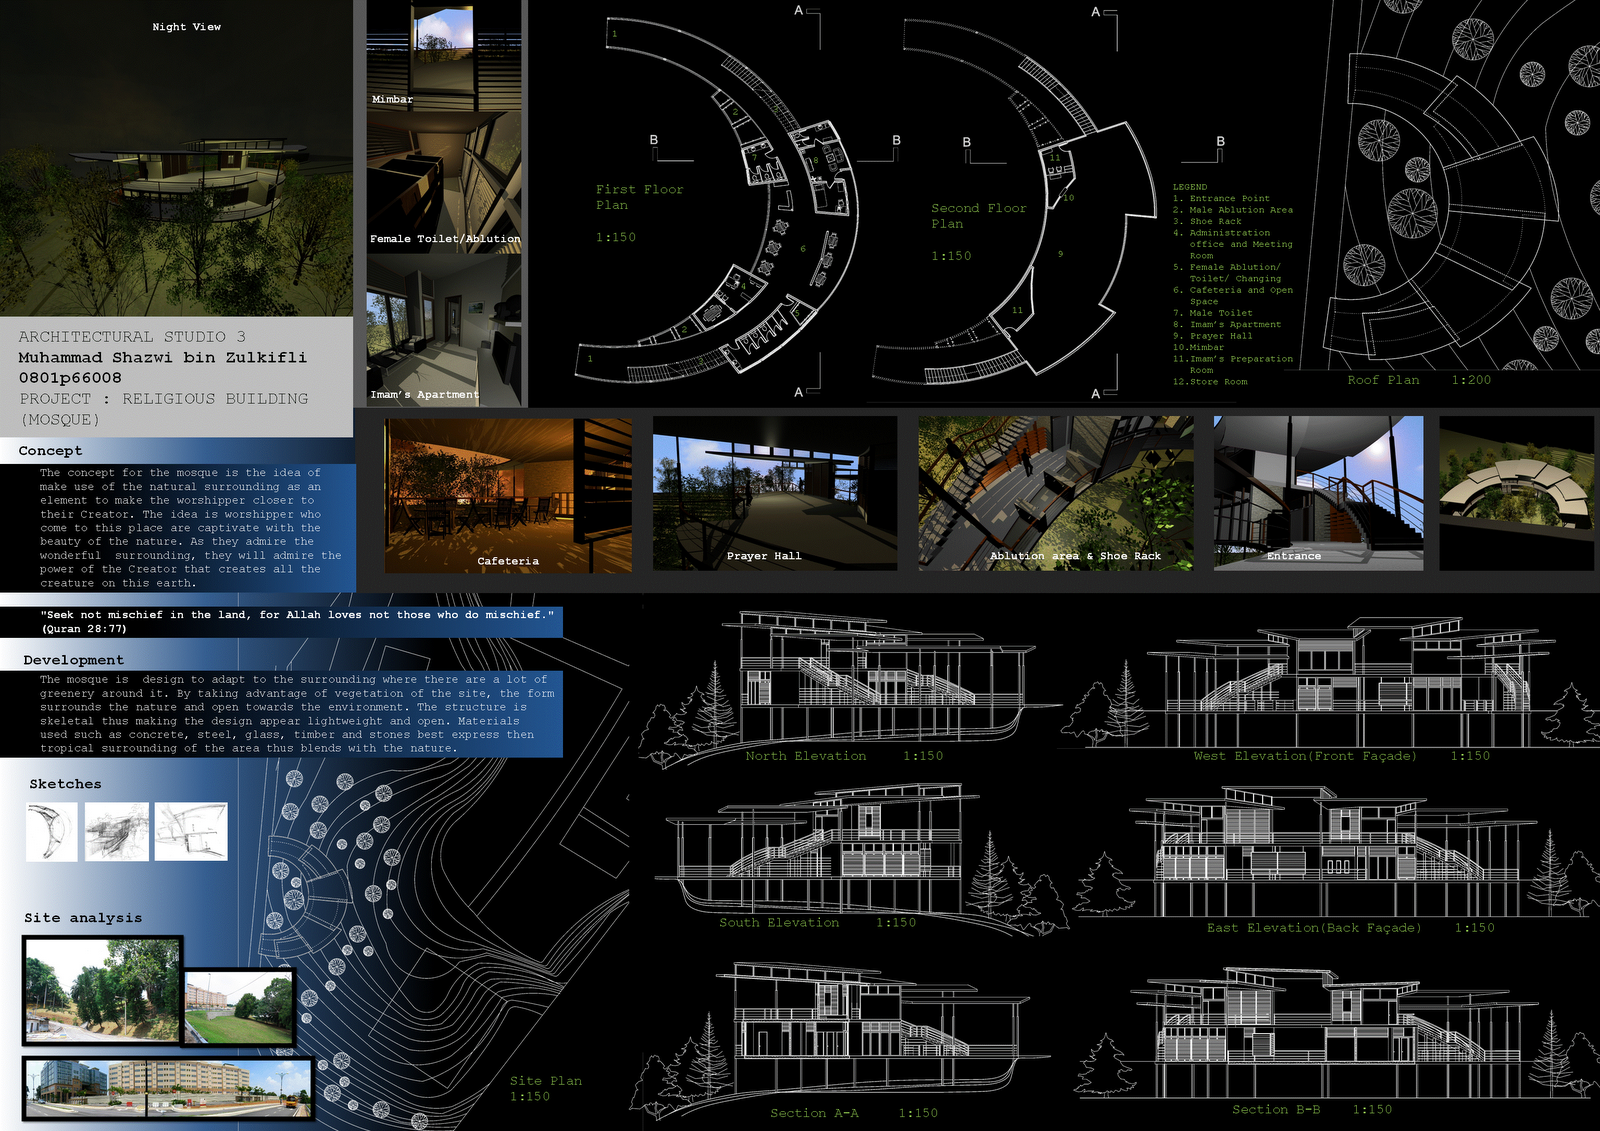 Architecture Design Presentation exellent architecture design boards animatica members maciej